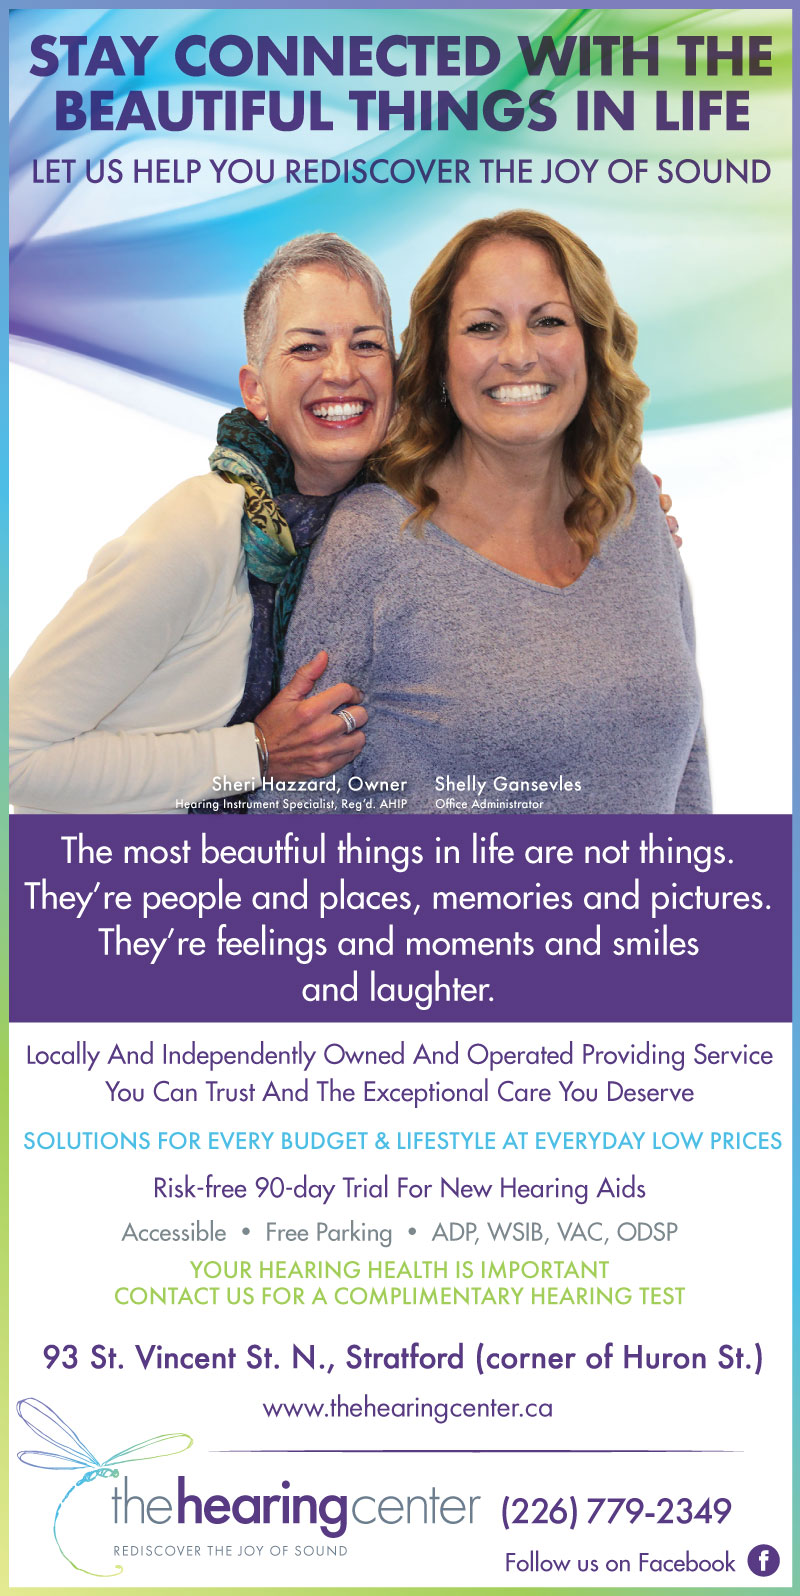 Hearing Aid Solutions for every budget & lifestyle